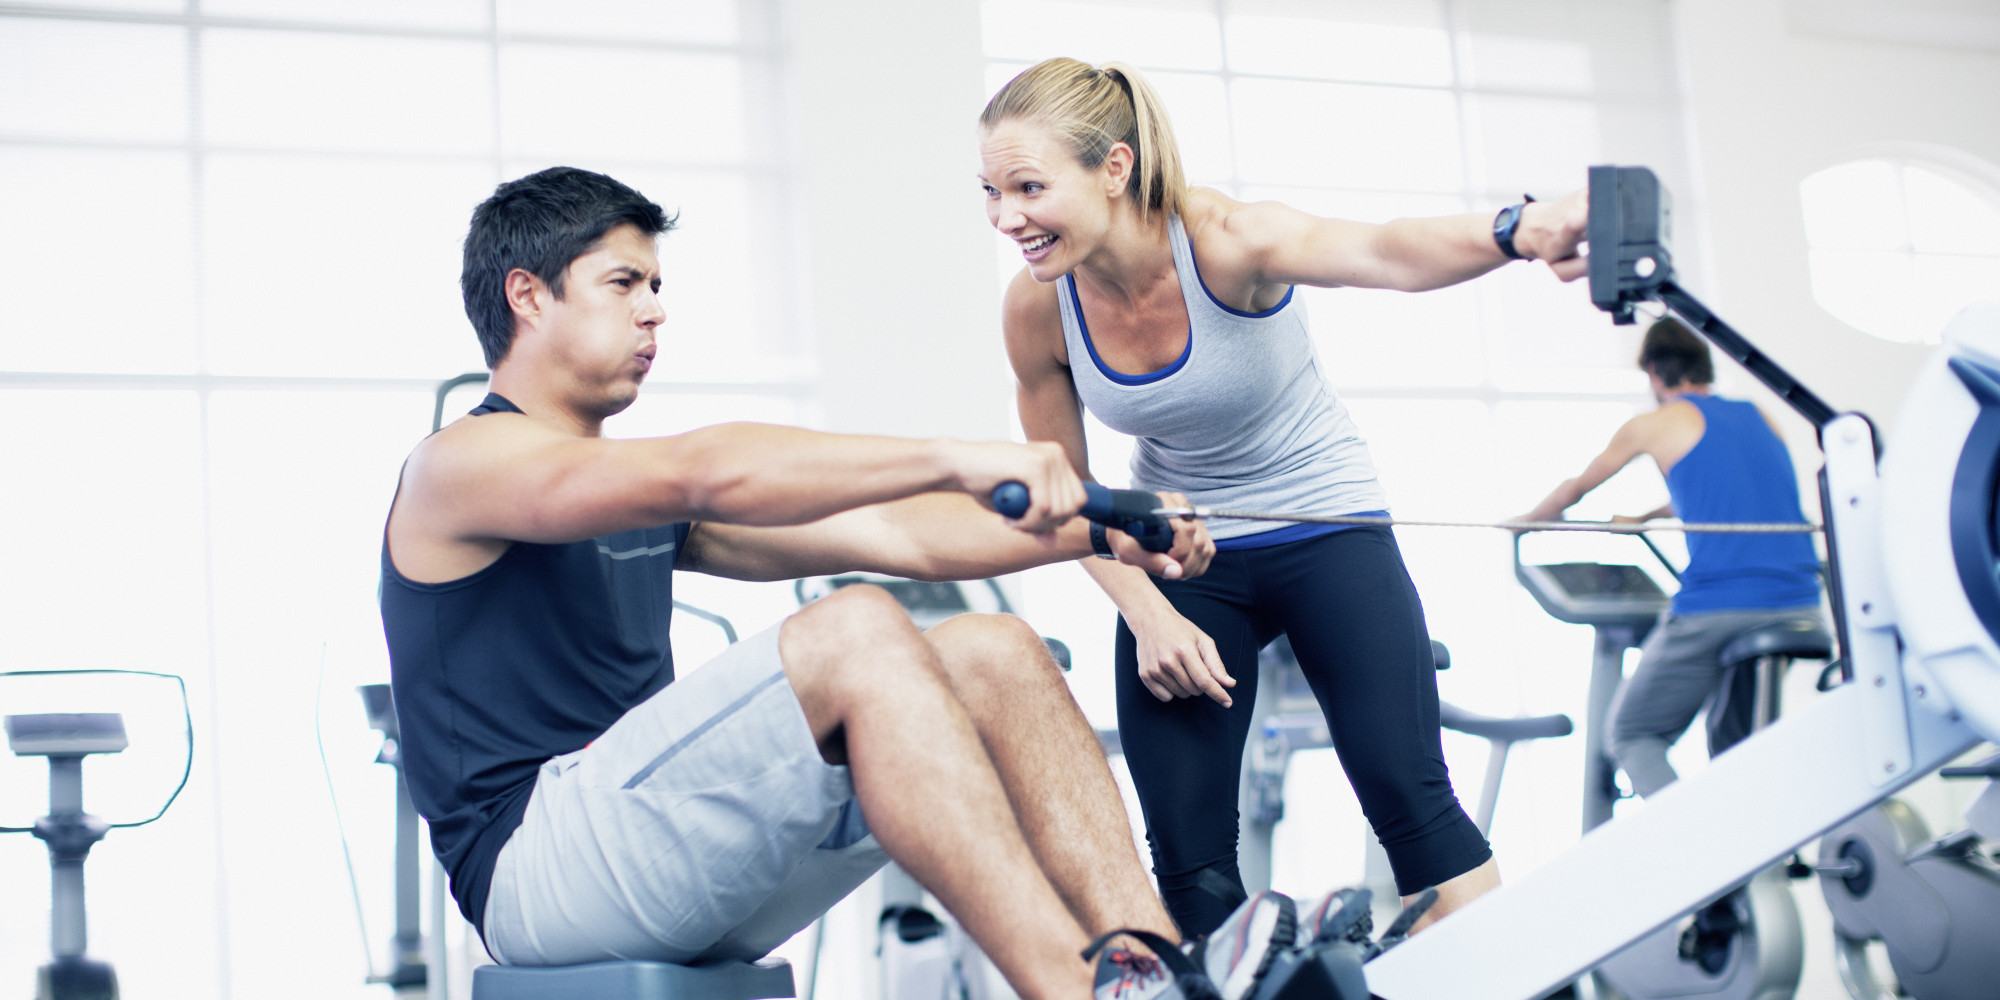 Top 5 Reasons To Hire A Pro Personal Fitness Trainer At